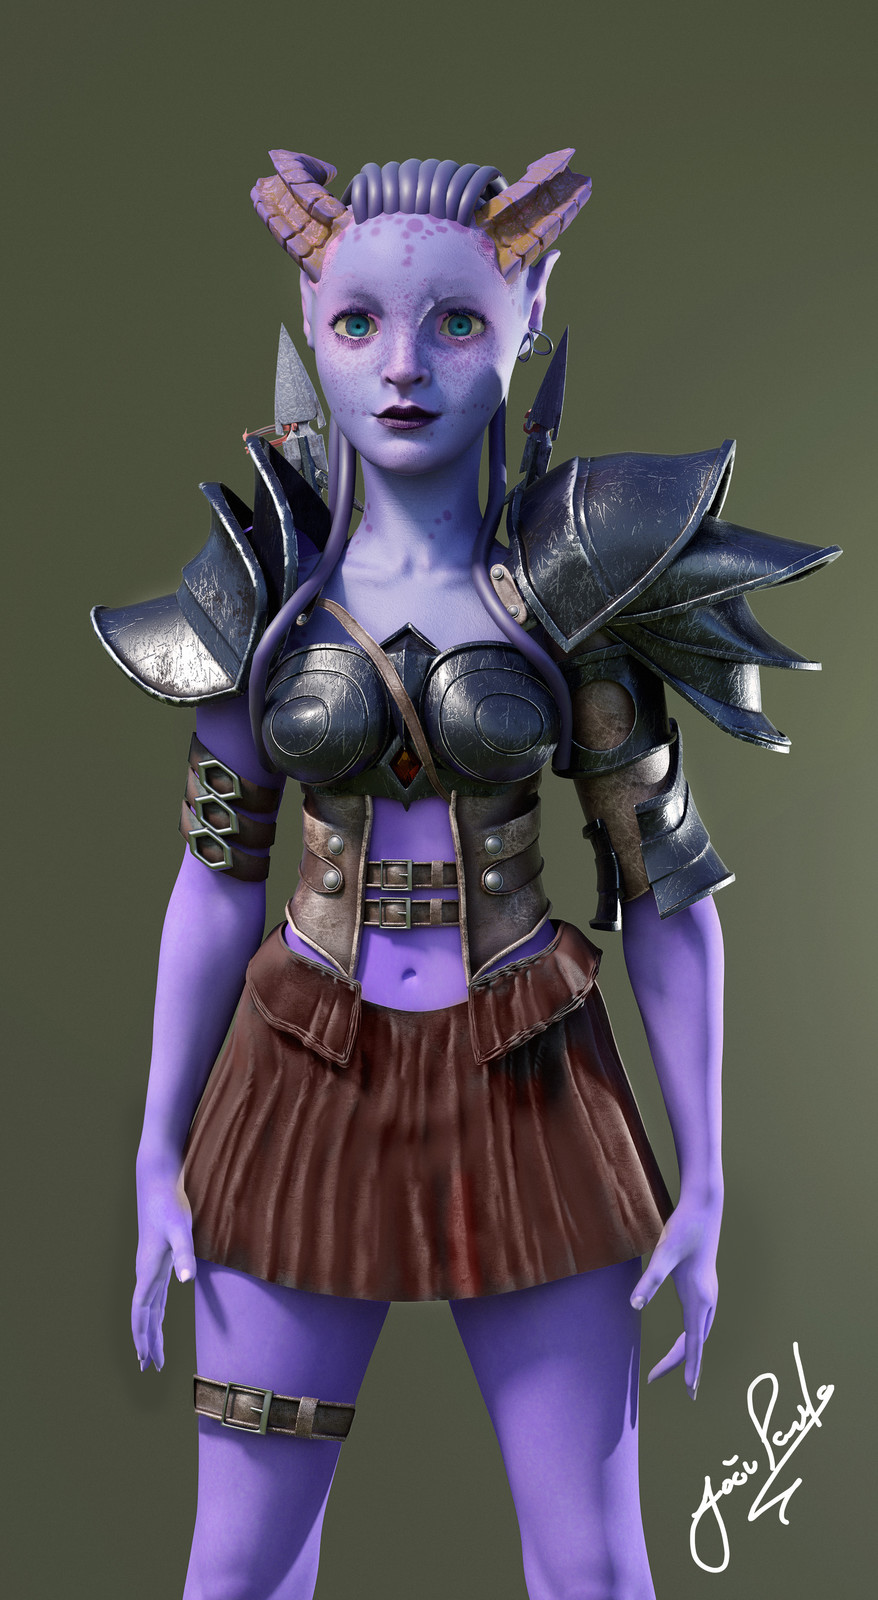 Blue Female Creature - sculpting and texturing study